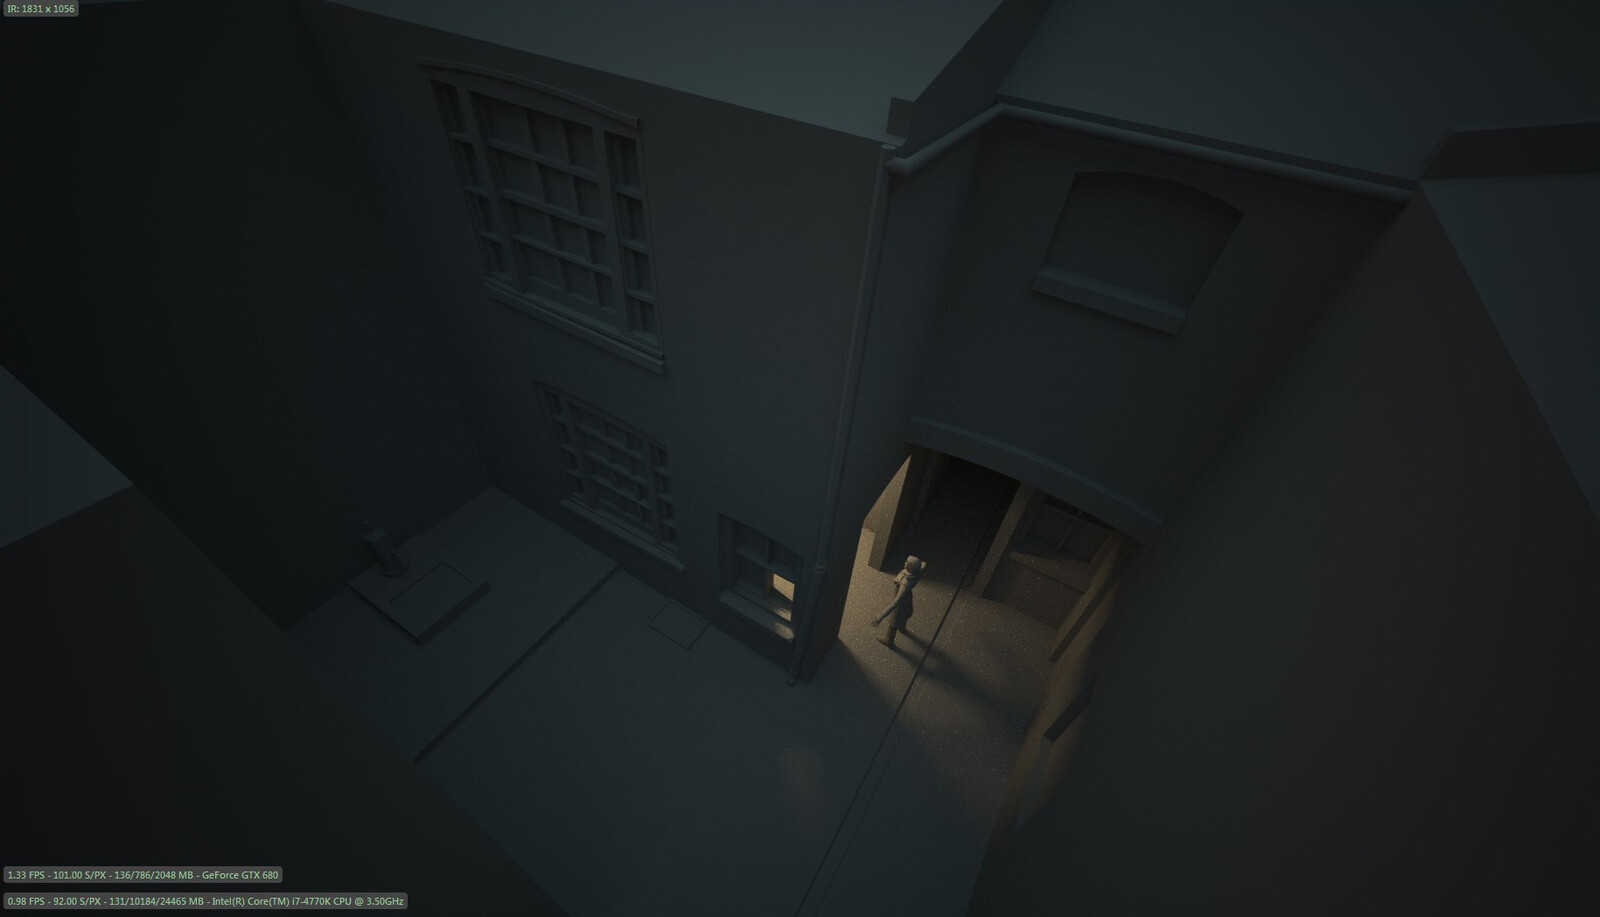 The birds eye camera was a departure from the usual ground-level camera of the game, to try and enhance the unease and disassociation, as well as contrast the tiny interior of the room the player walks into for the next scene.